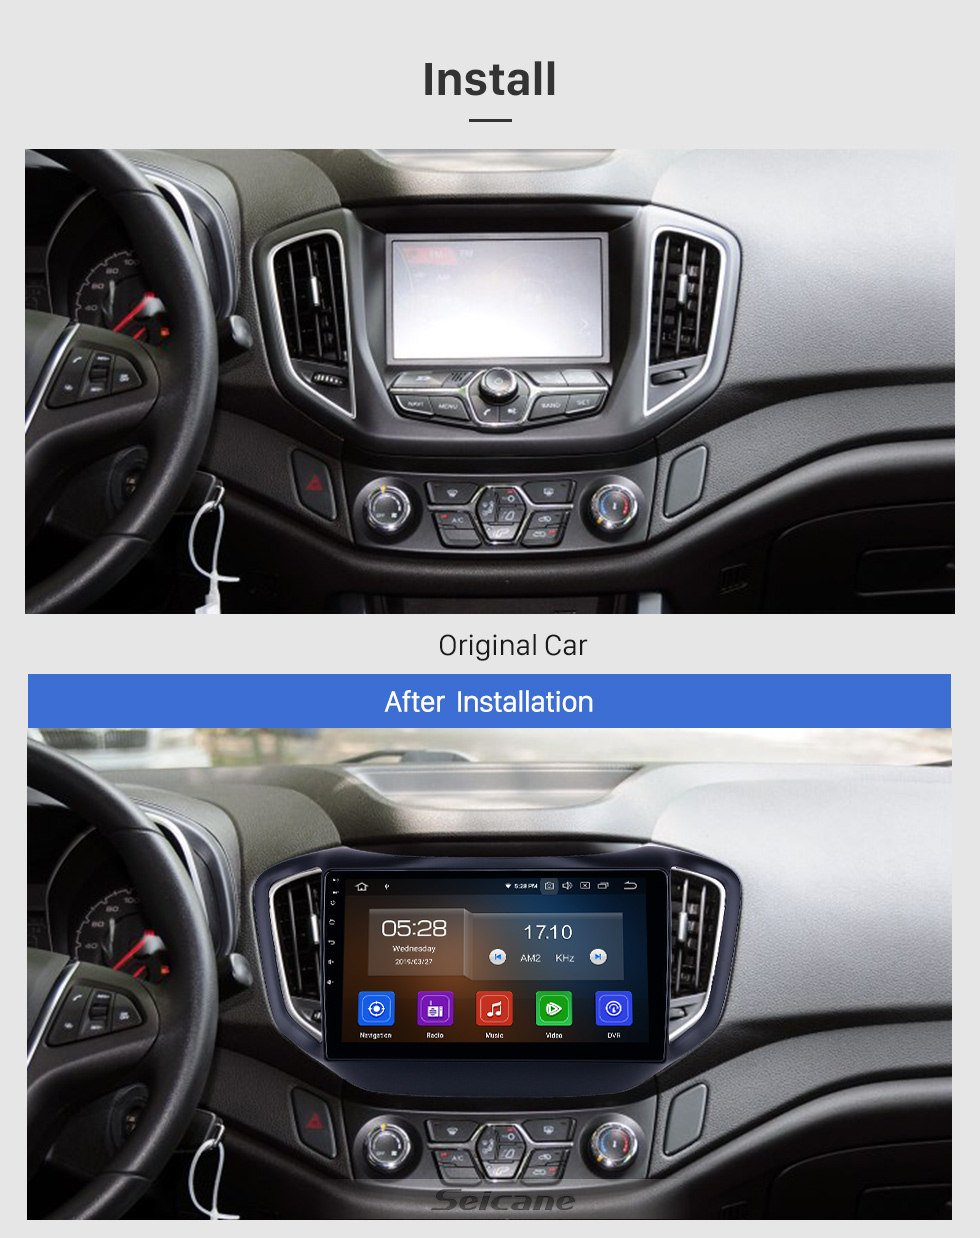 Seicane 10.1 inch Android 9.0 GPS Navigation Radio for 2014-2017 Chery Tiggo 5 with HD Touchscreen Carplay USB Bluetooth support DVR DAB+